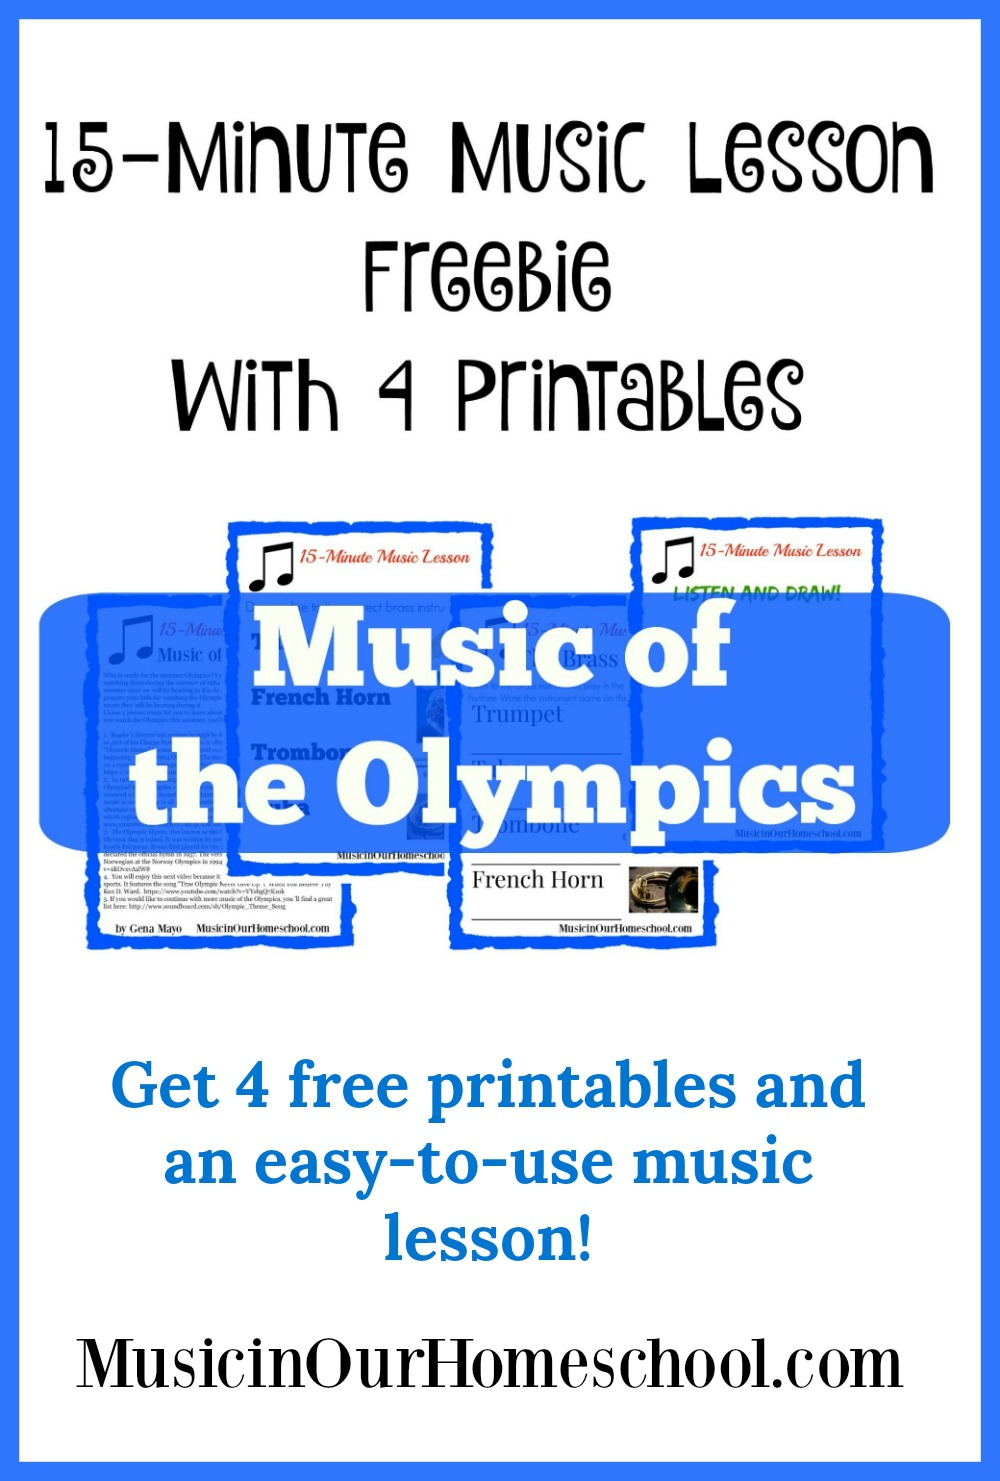 Get this free 15-Minute Music Lesson for music of the Olympics. #musicinourhomeschool #homeschoolmusic #elementarymusic #musiclessonsforkids